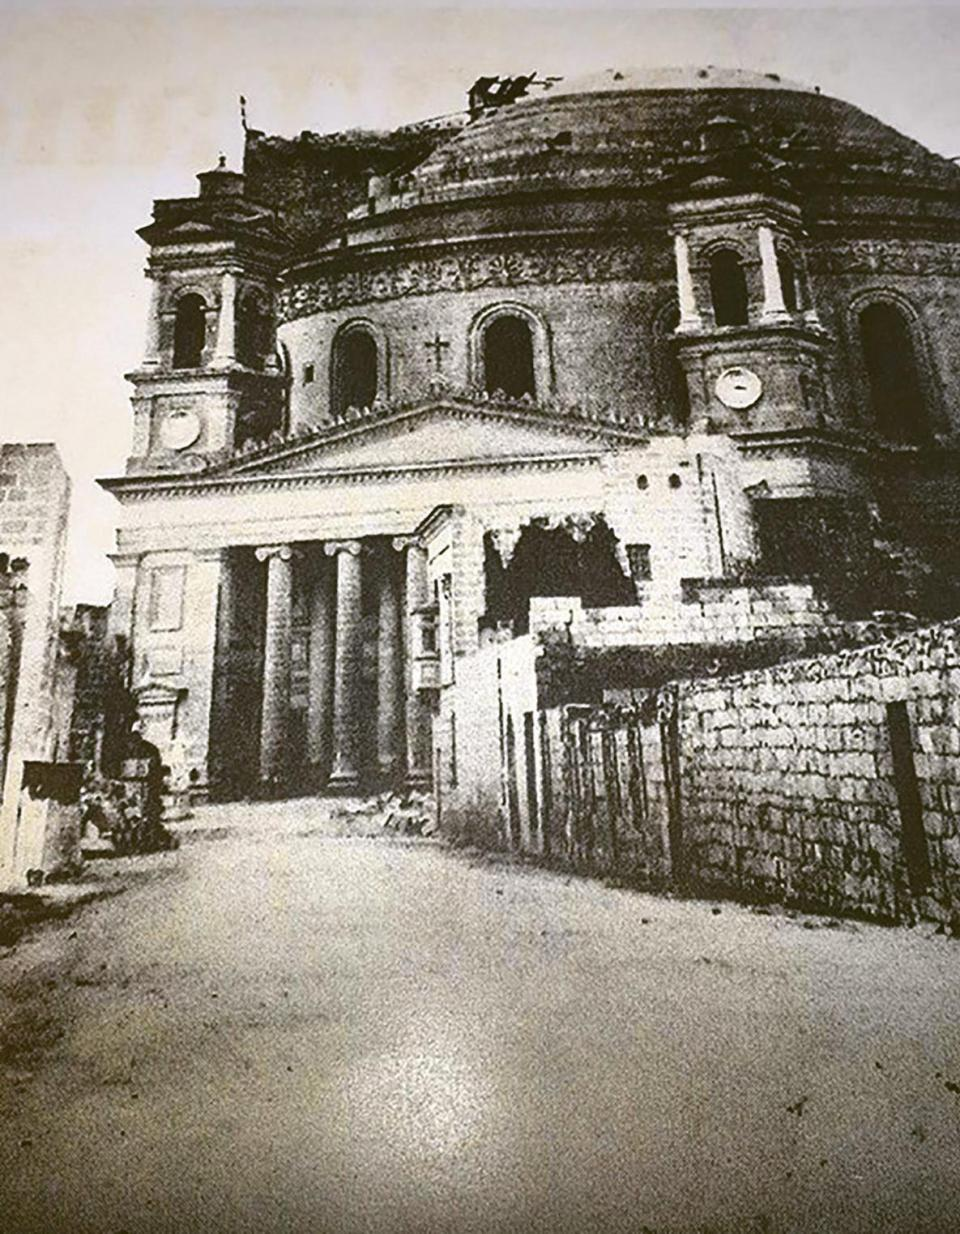 The Mosta dome in the mid-19th century, not quite ready.